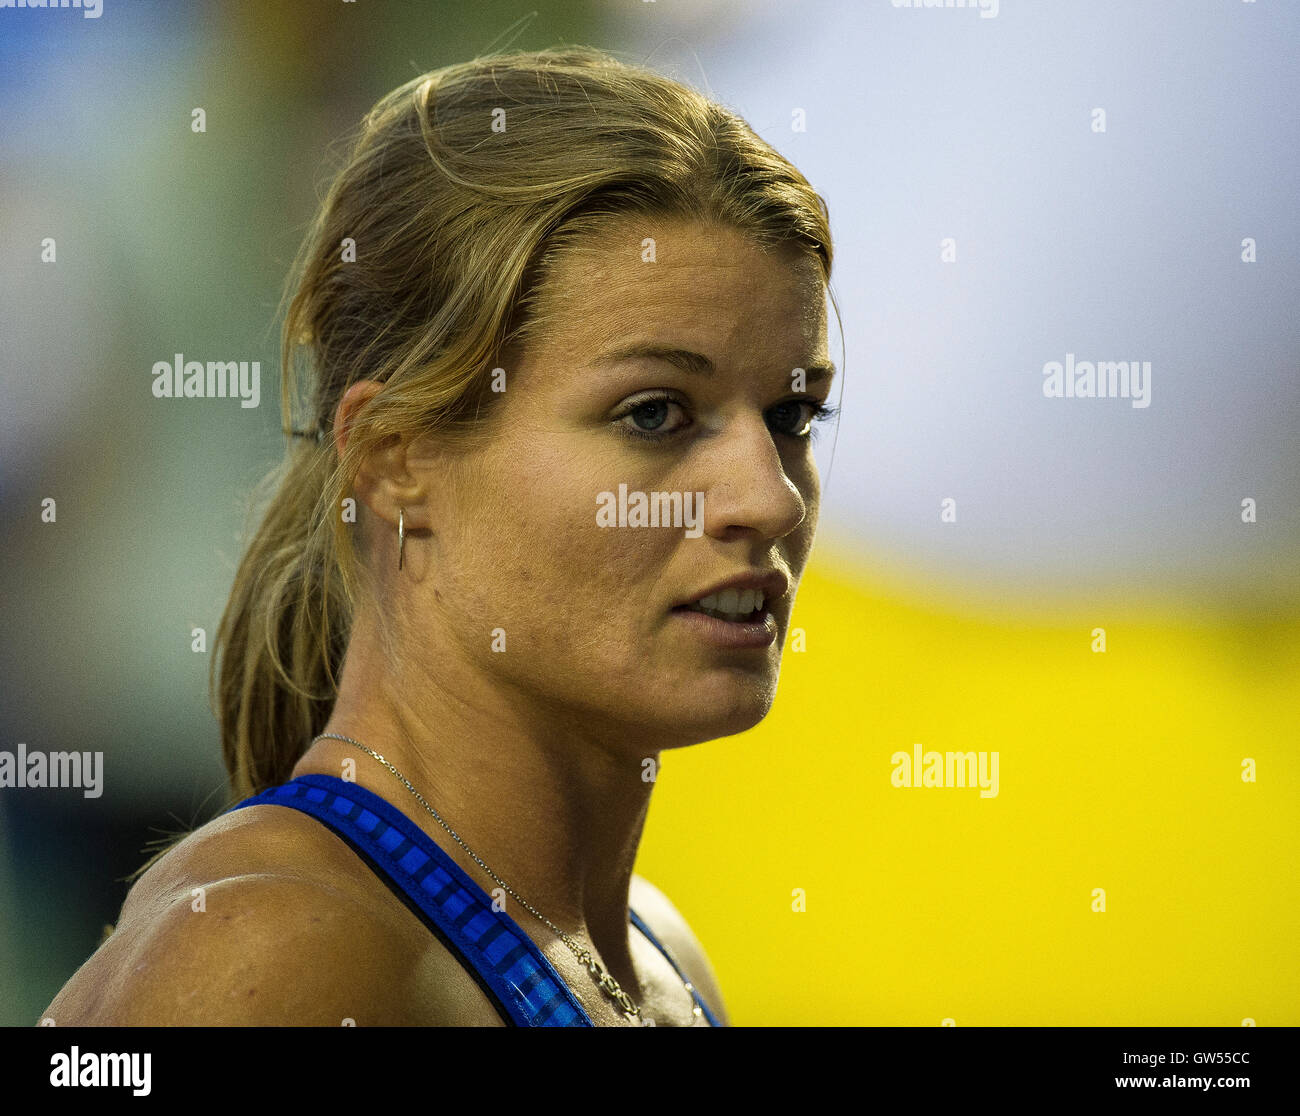 BRUSSELS, BELGIUM - SEPTEMBER 9: Dafne Schippers competing in the women's 100m at the AG Insurance Memorial - Stock Image